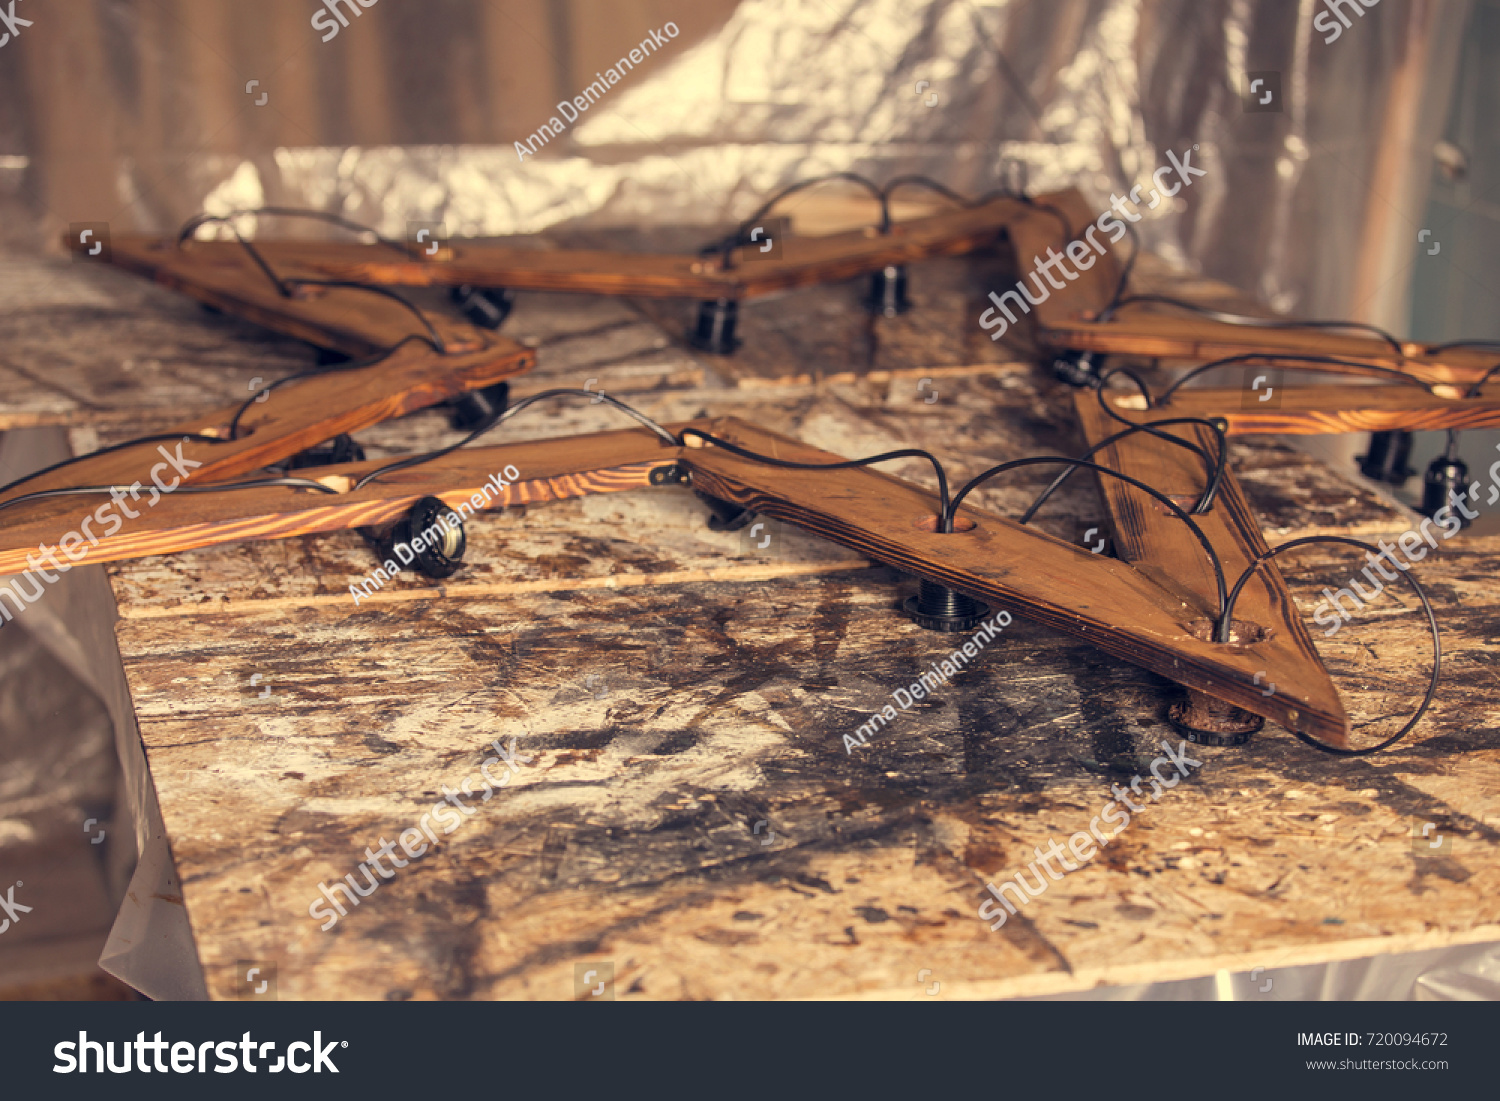 Design Project Making Wooden Decoration Shape Stock Photo Edit Now Wiring Metal Bulb Holder Of In A Star With Electric Wires And